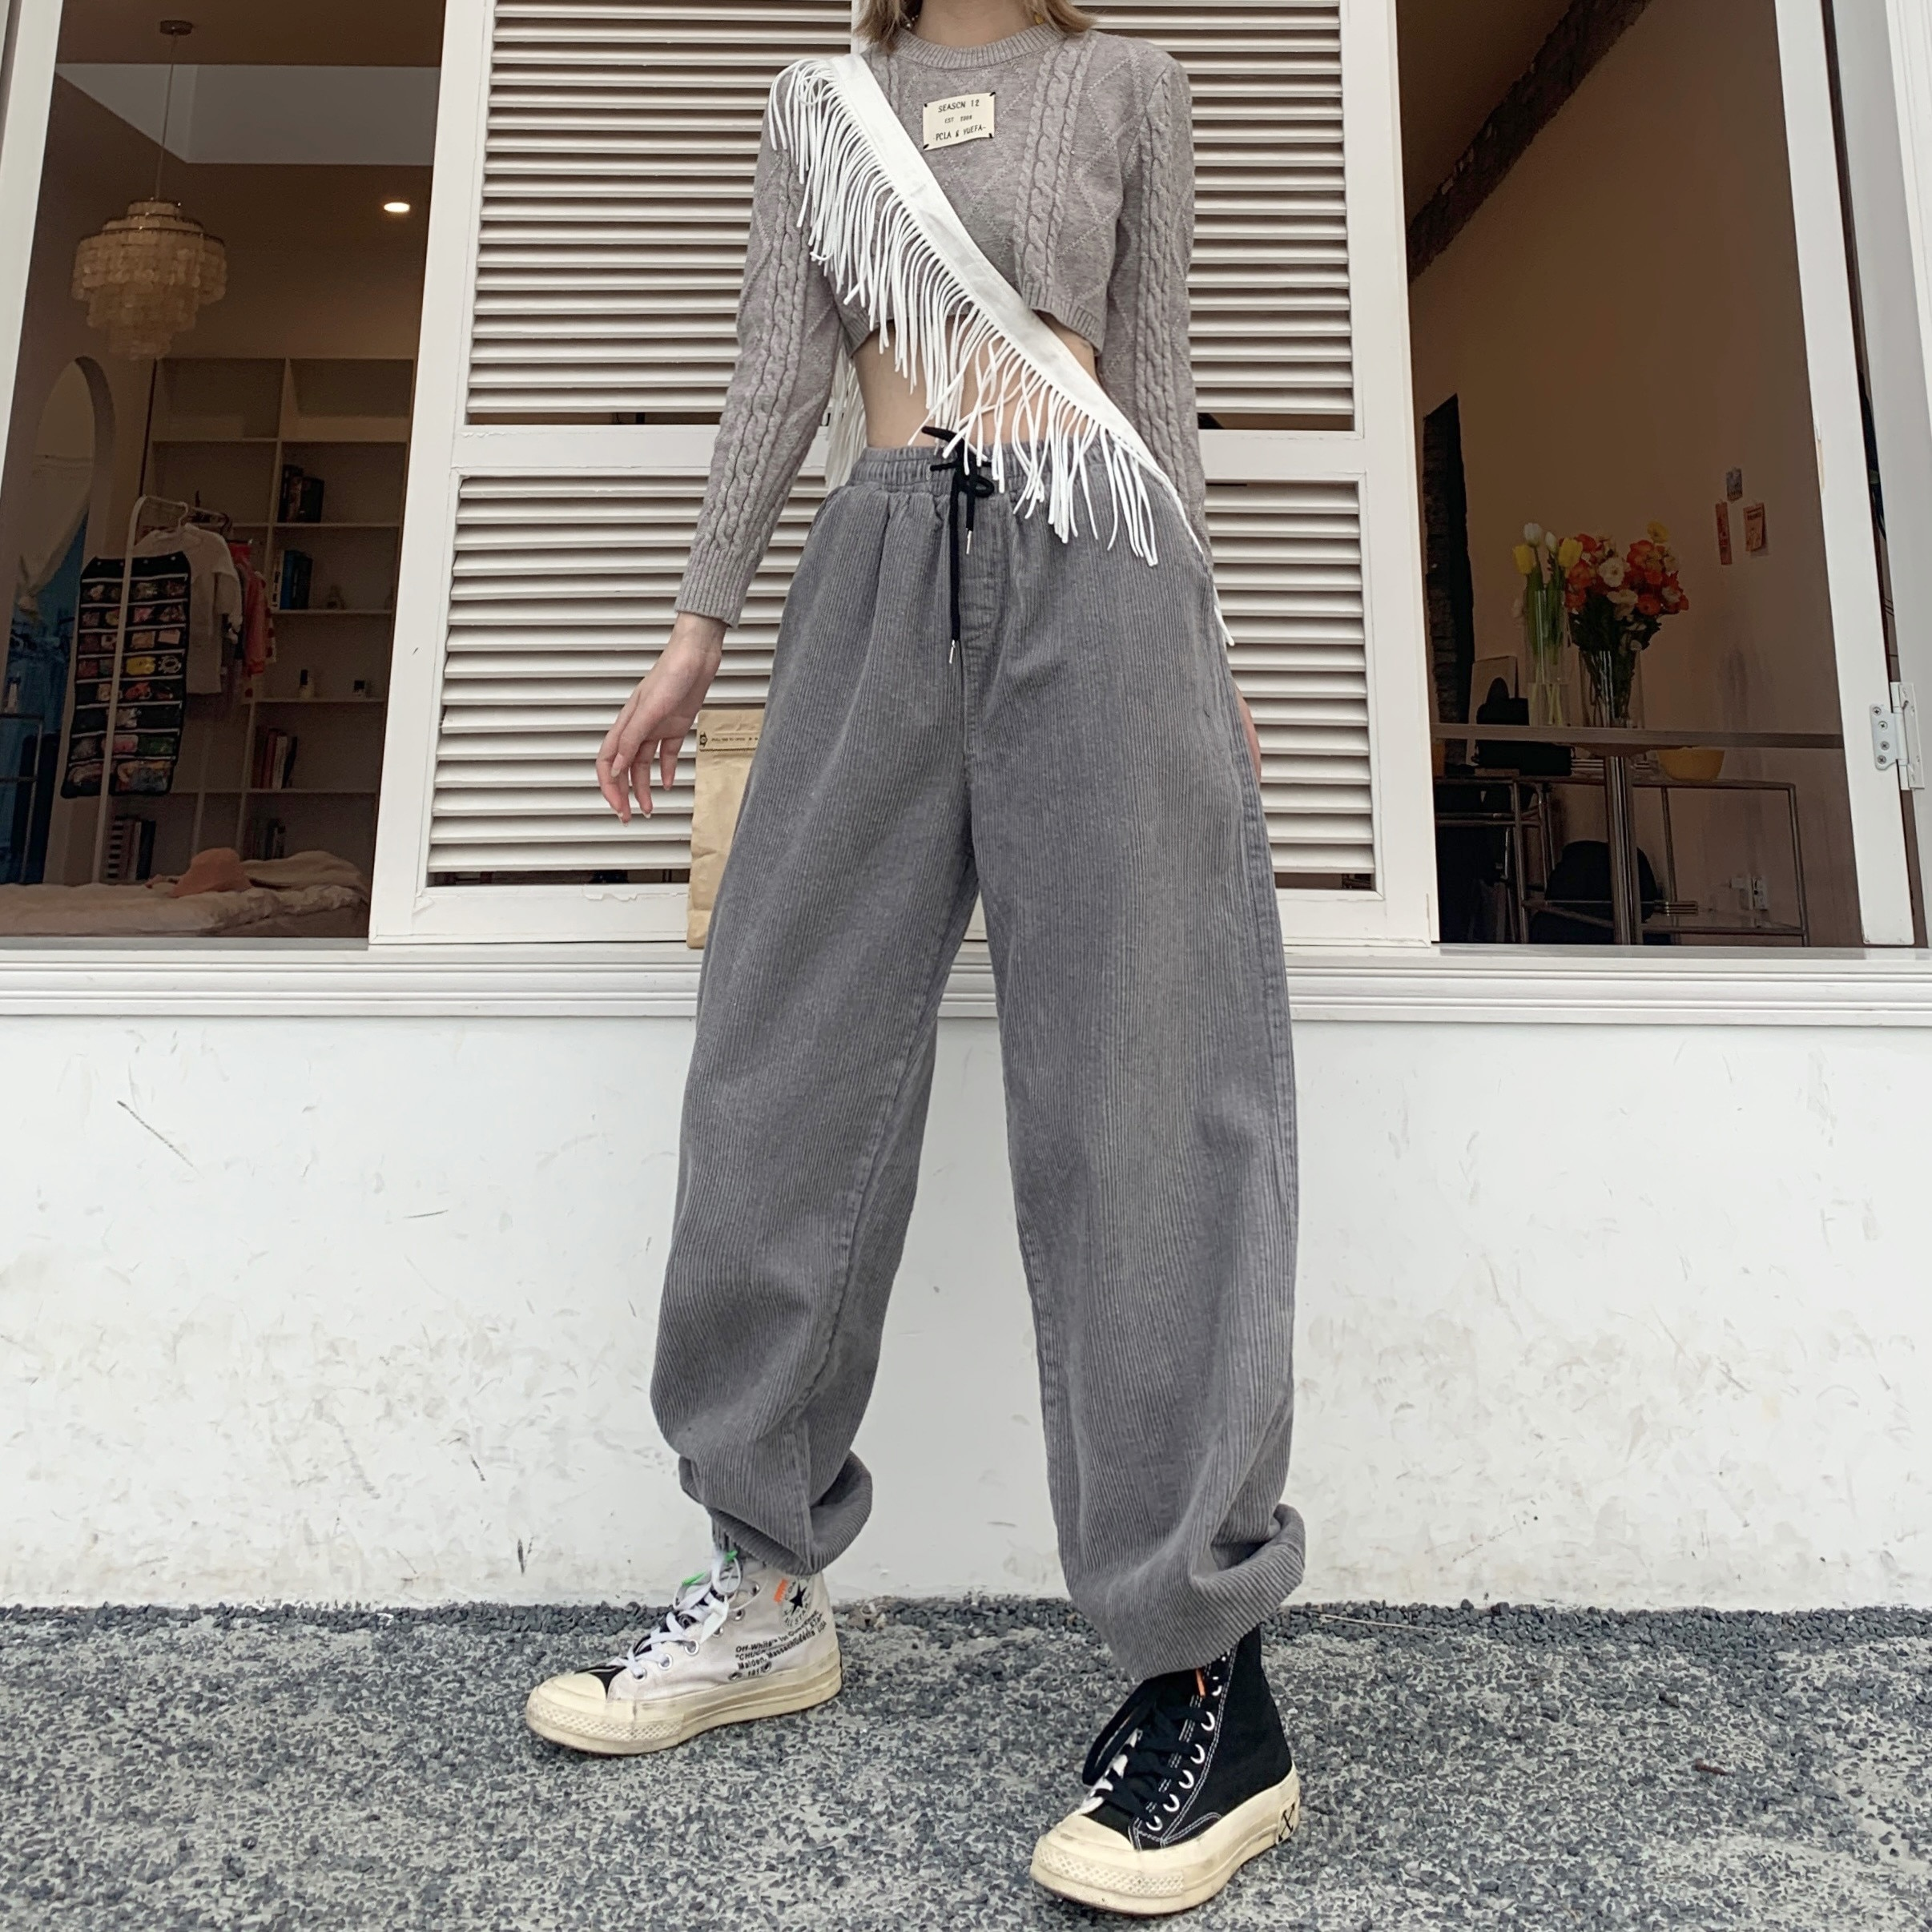 2021 Autumn Winter New Korean Style Ins Student Corduroy Casual Thick Pure Cotton Washed Harem Pants